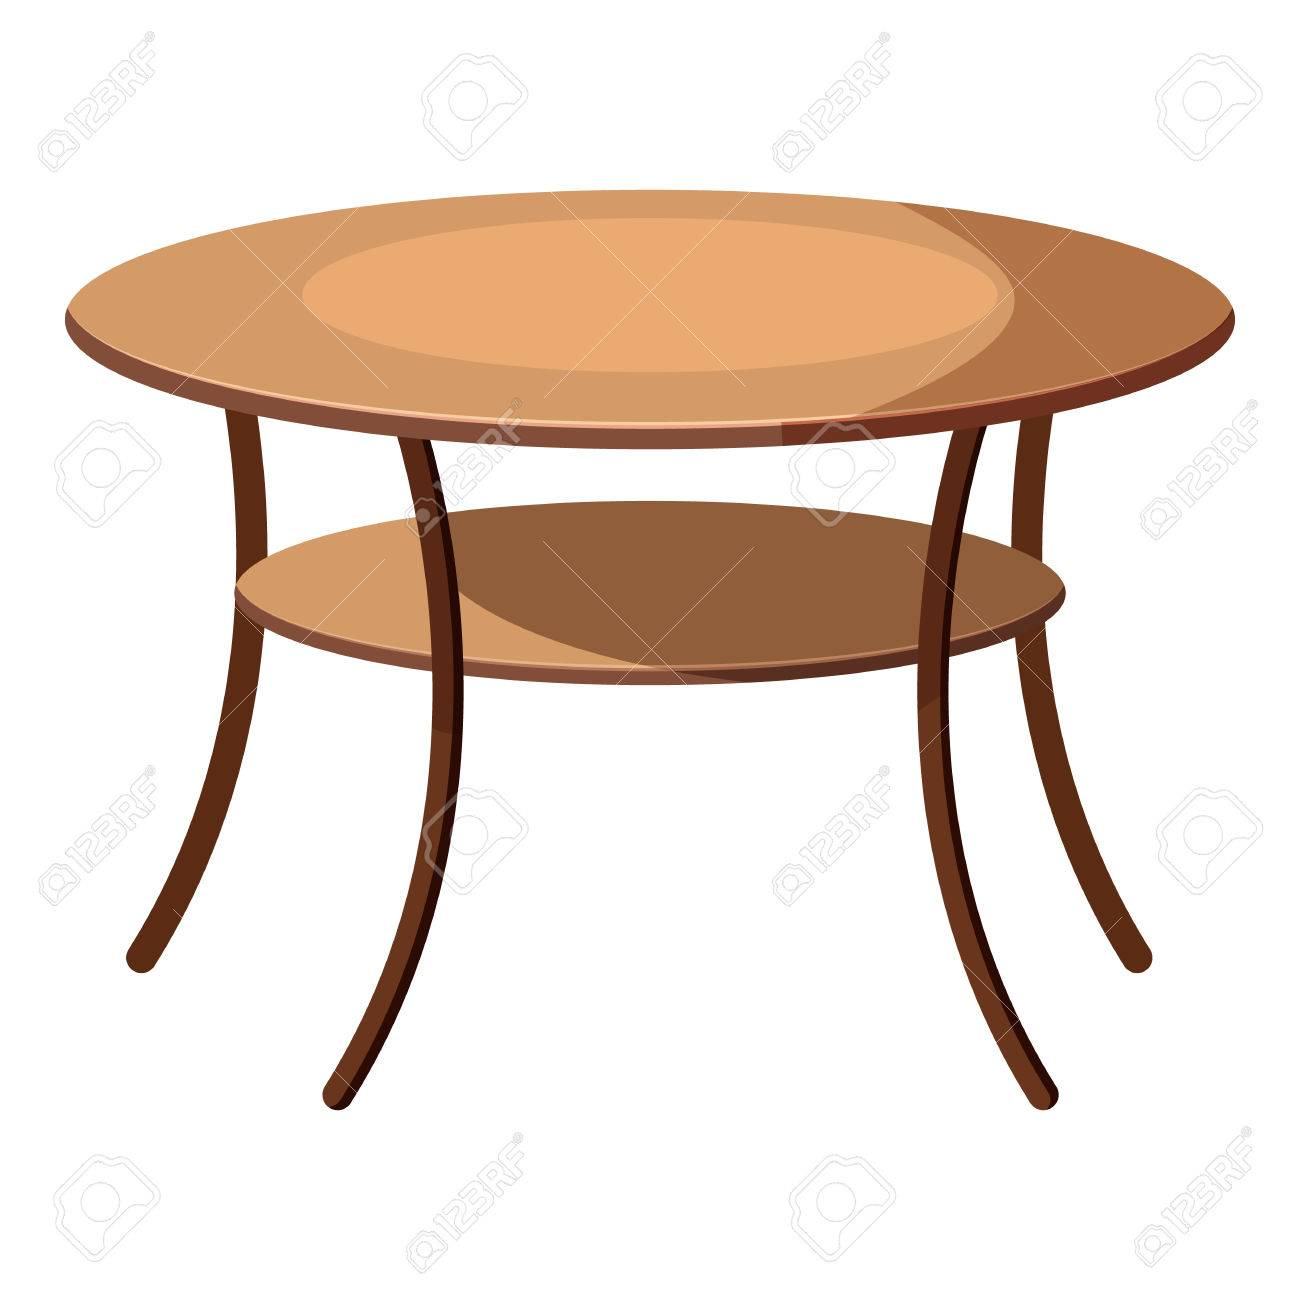 Round Table Icon In Cartoon Style Isolated On White Background  # Muebles Didecor